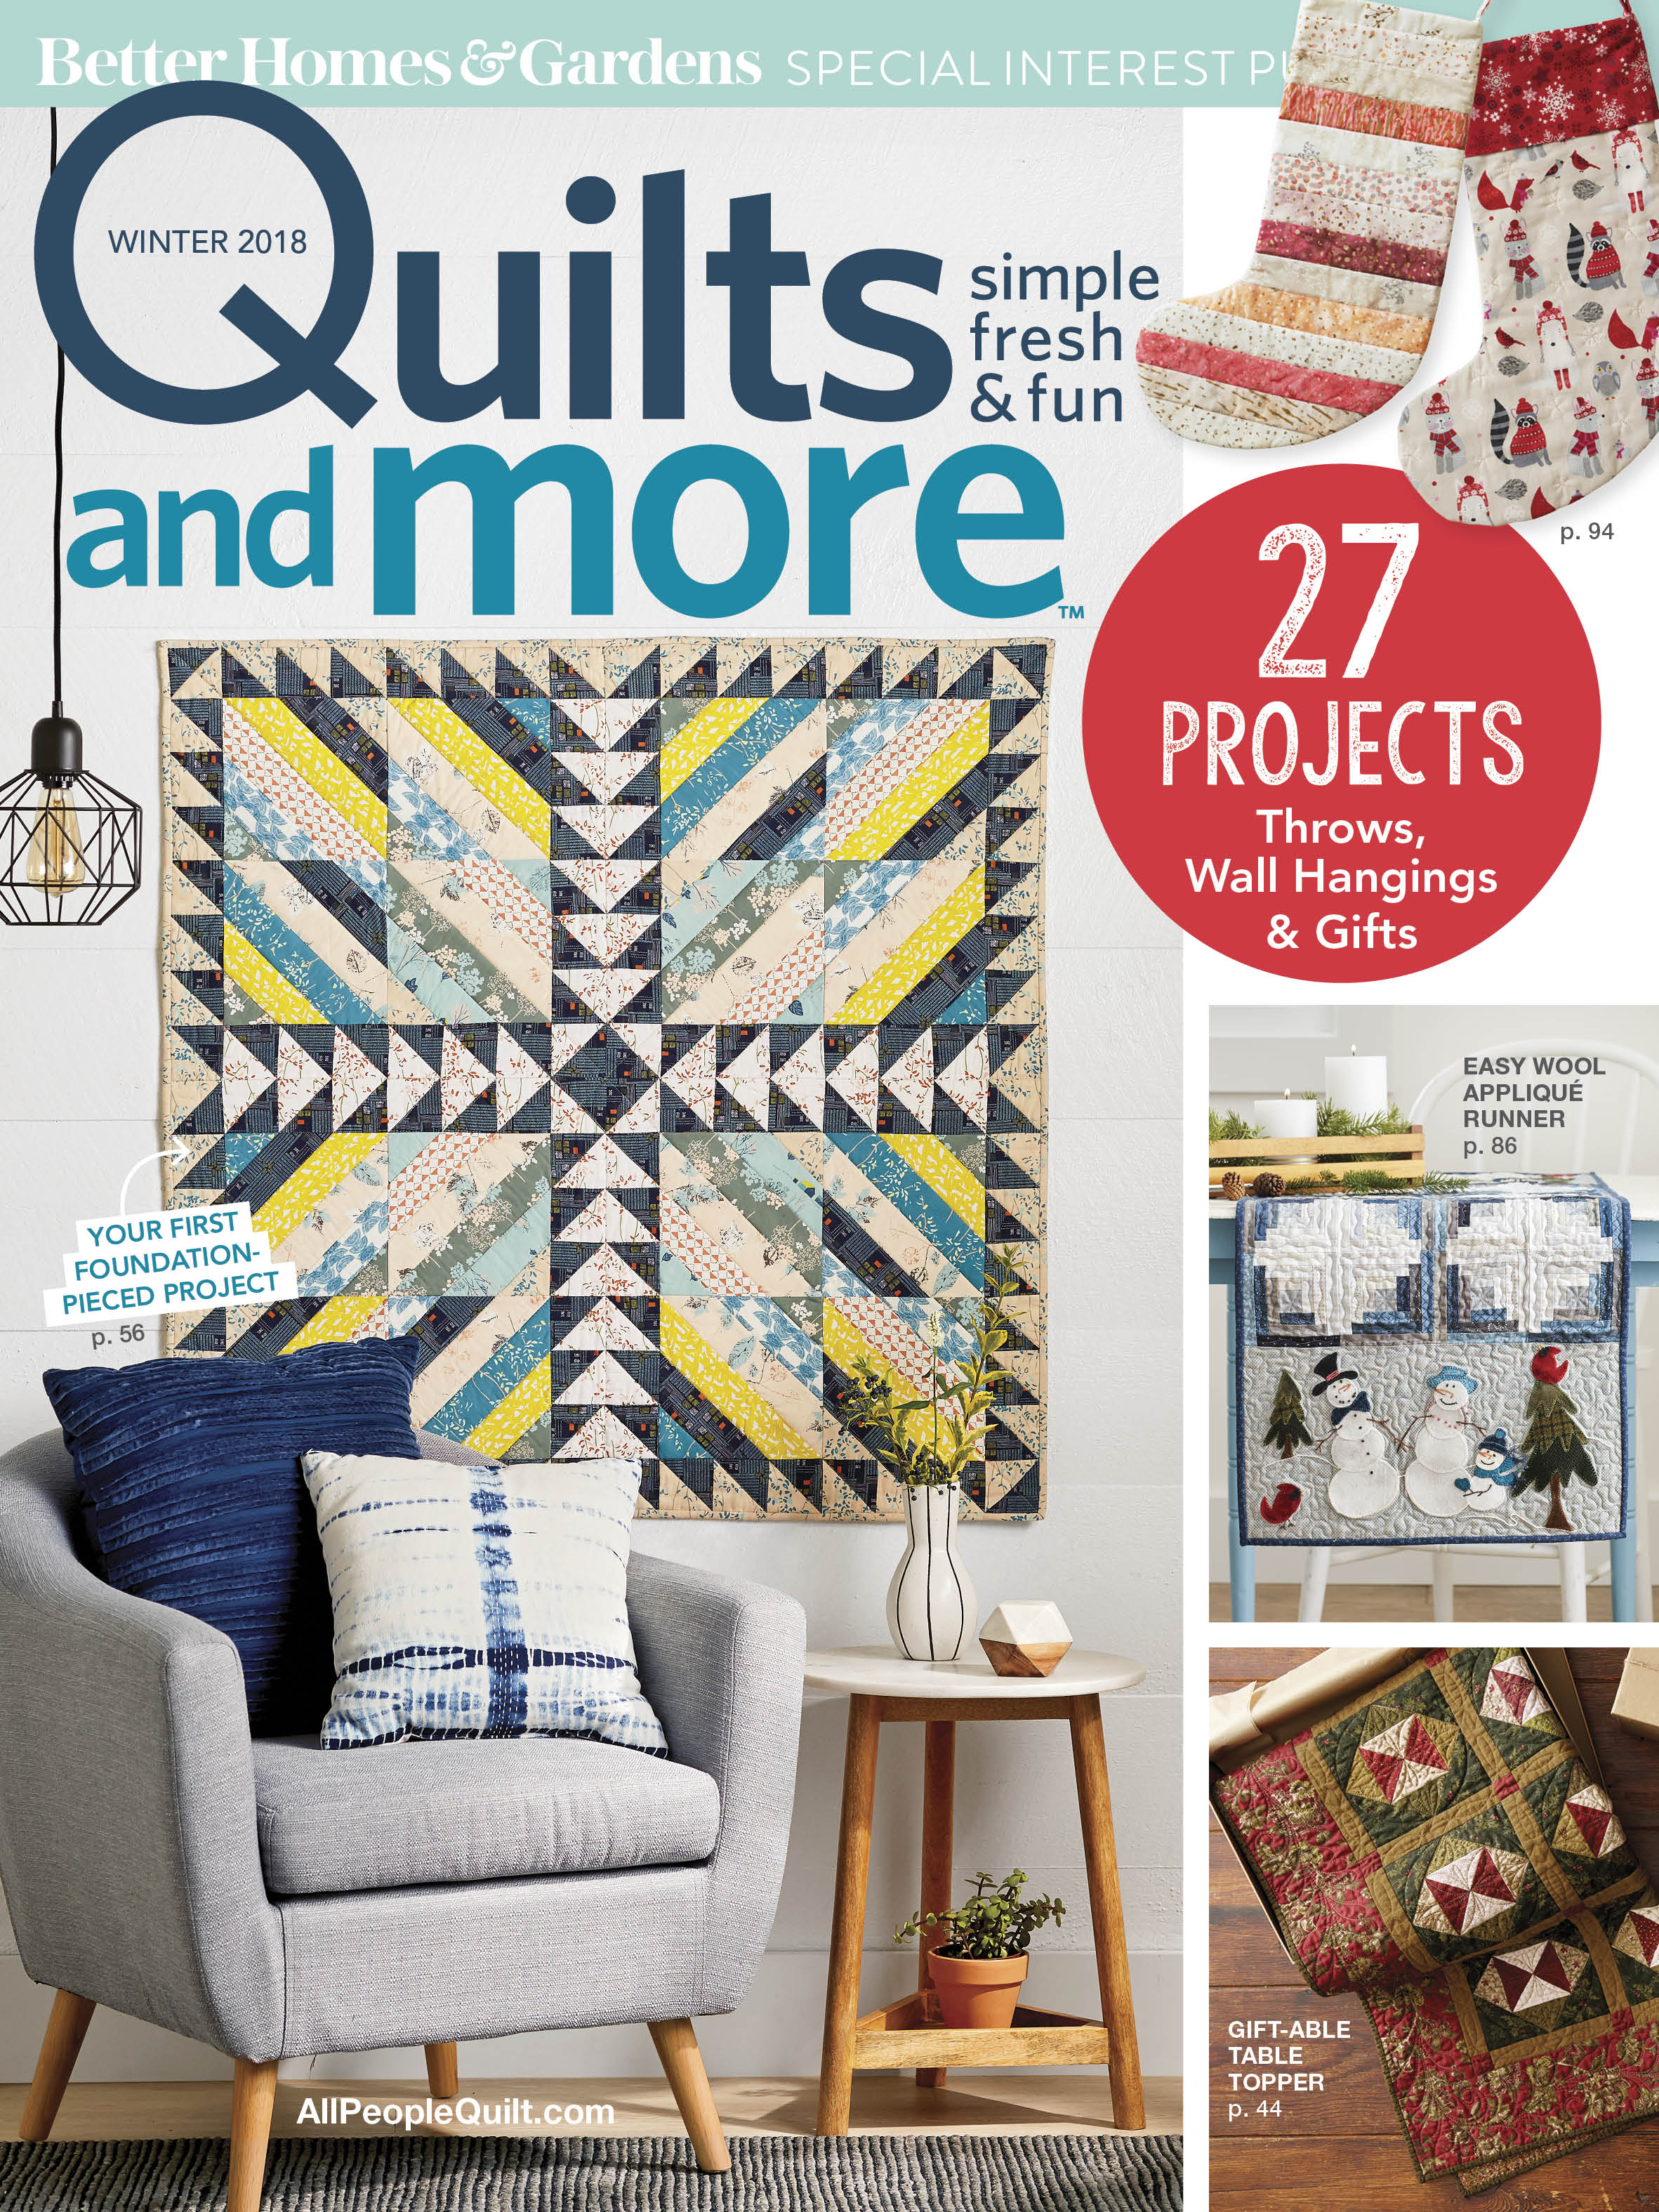 Used with permission from Quilts and More™ magazine. ©2018 Meredith Corporation. All rights reserved.